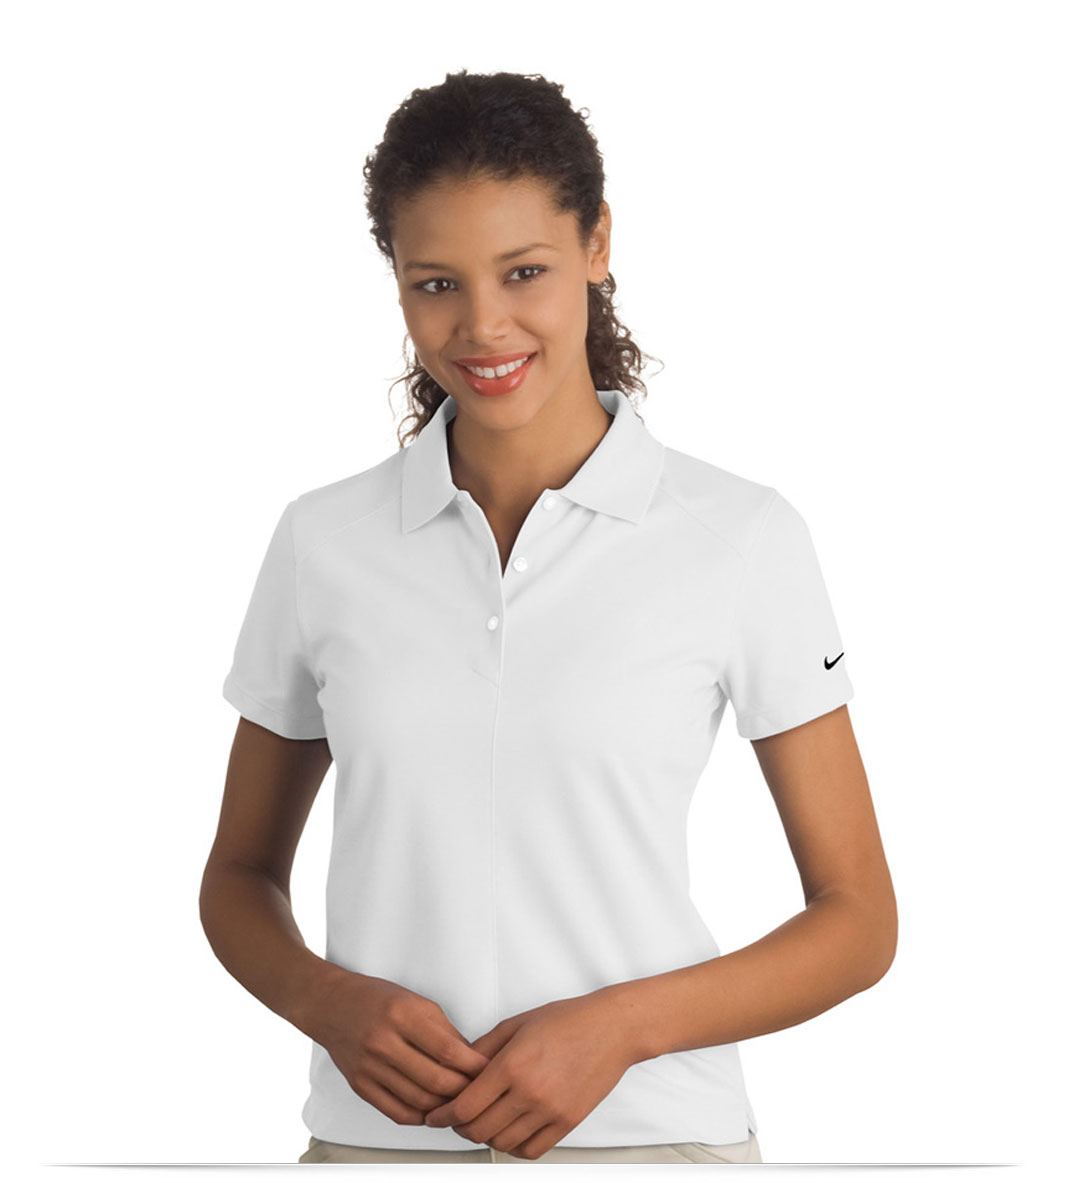 Personalized Nike Ladies Pique Golf Shirt